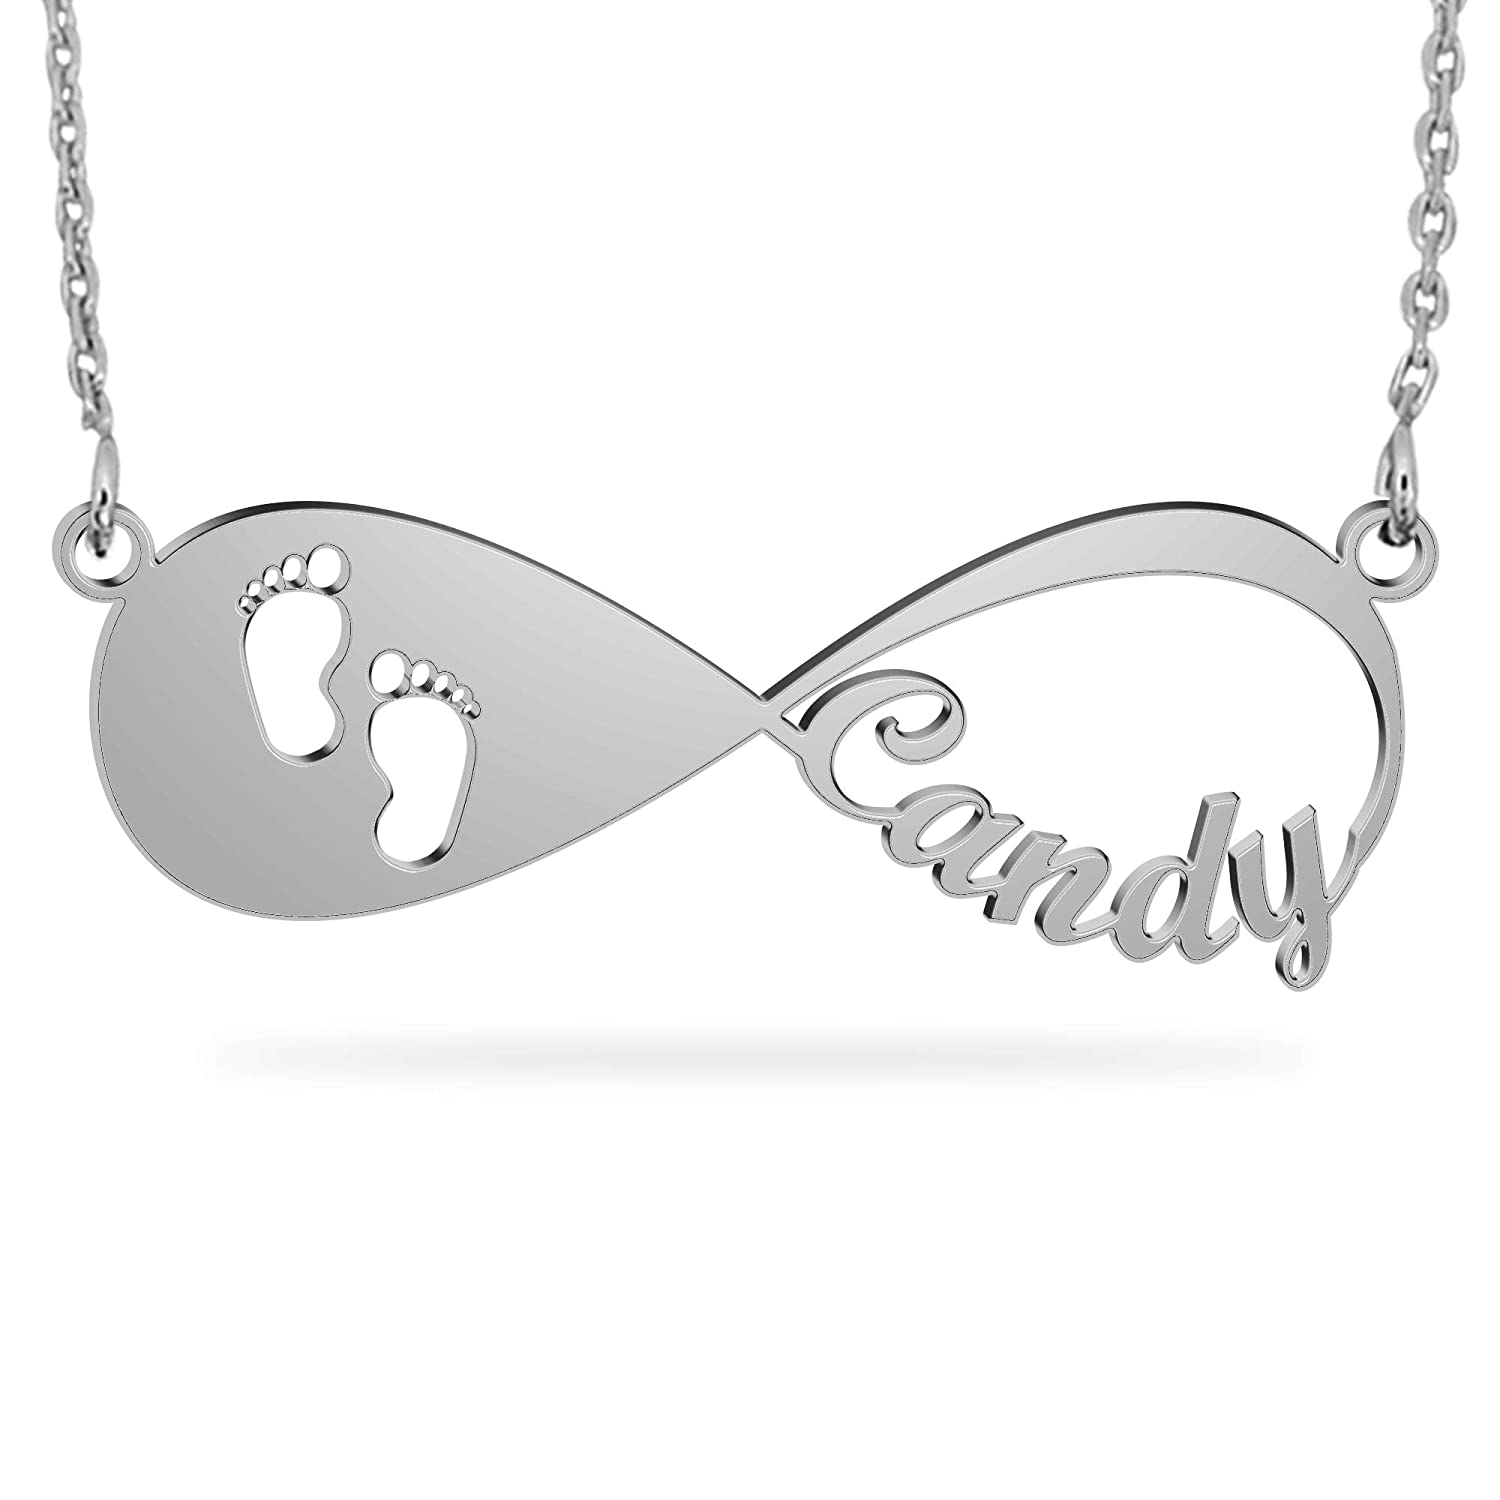 Personalized Sterling Silver Infinity Necklace with Names Custom 18K Gold Plated Name Necklace Eternal Jewelry